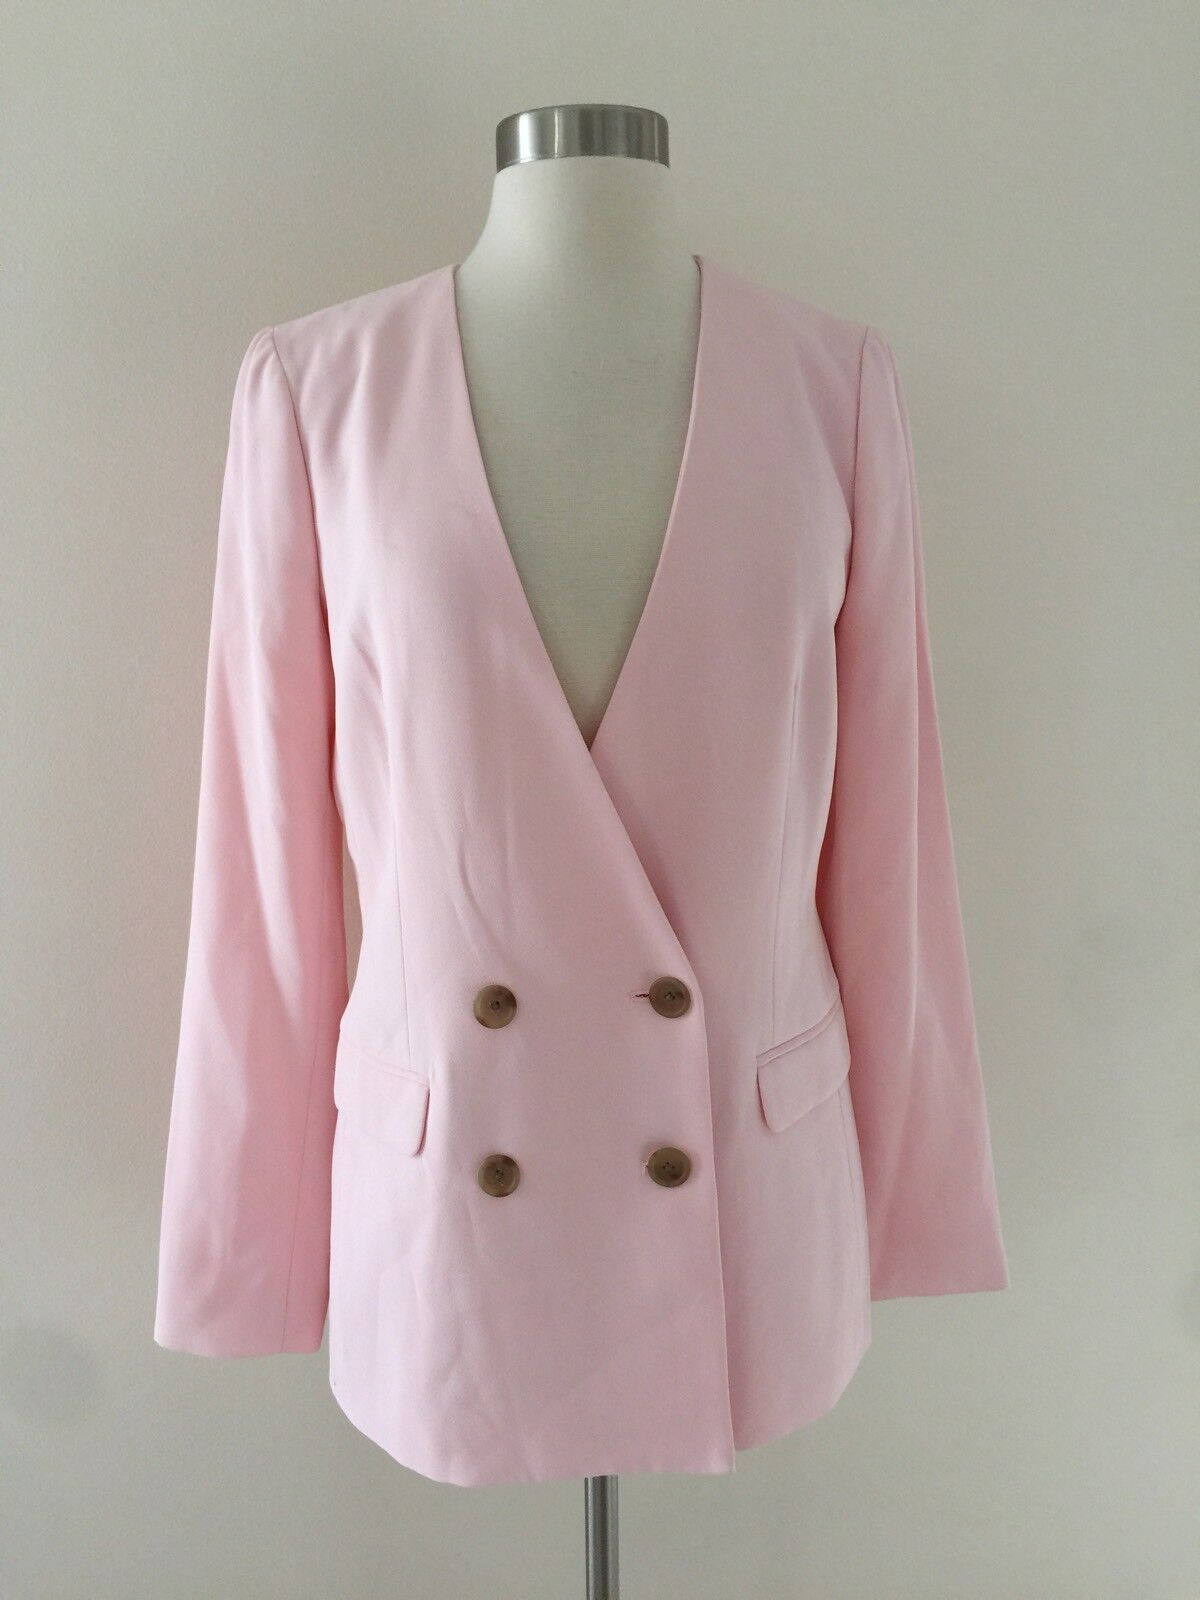 New JCREW French girl blazer in 365 crepe Pink Size 2 H6285